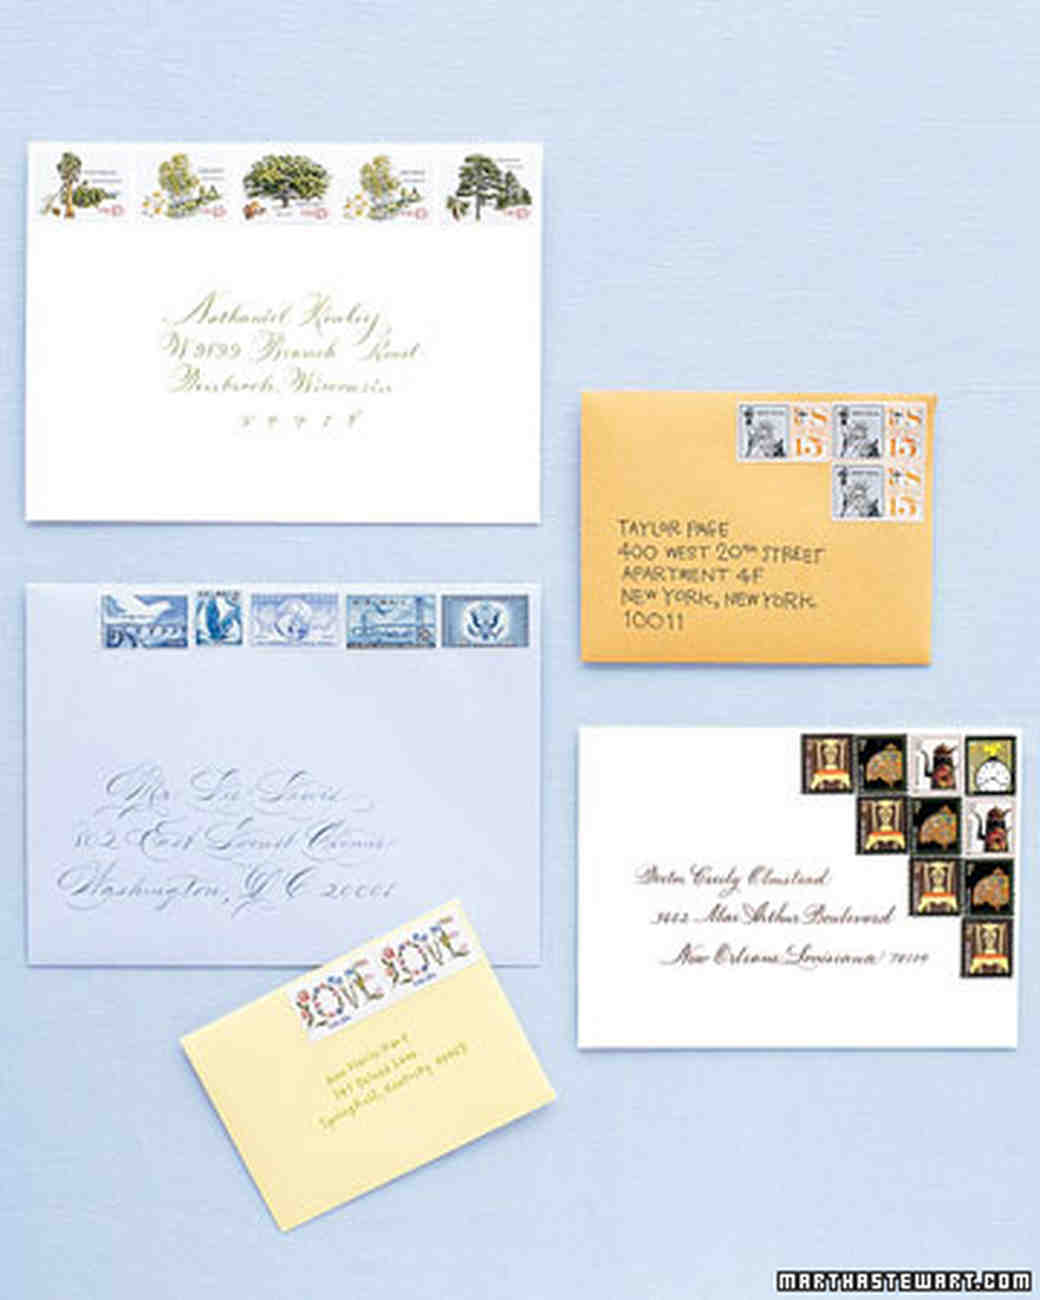 mwa102884_spr07_envelopes.jpg